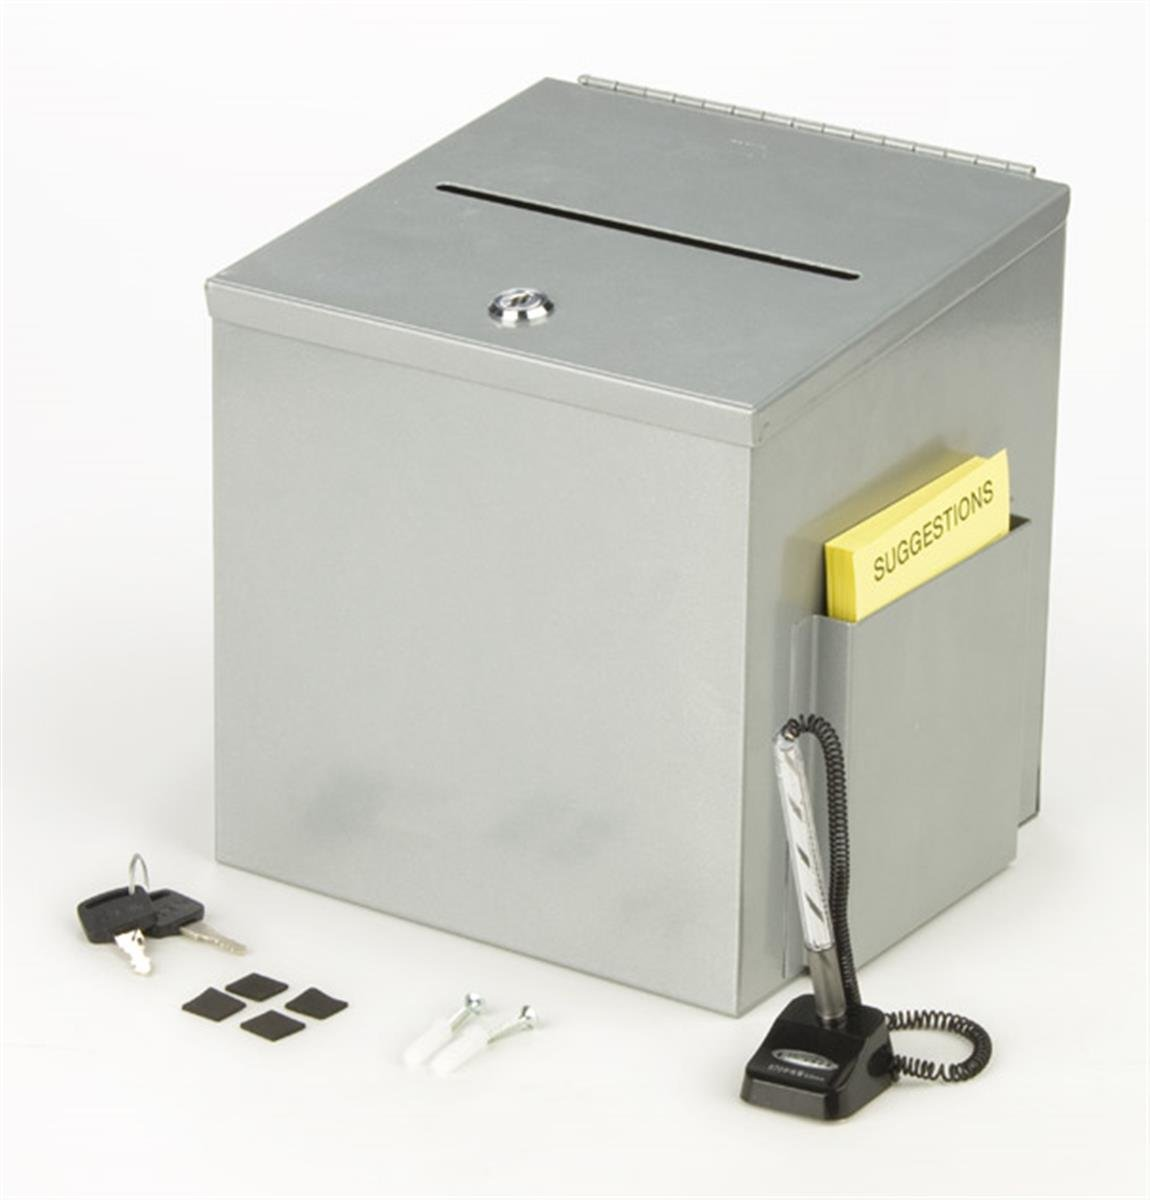 Metal Suggestion Box, Donation Box with Locking Door and Side Pocket, for Tabletop or Wall - Silver